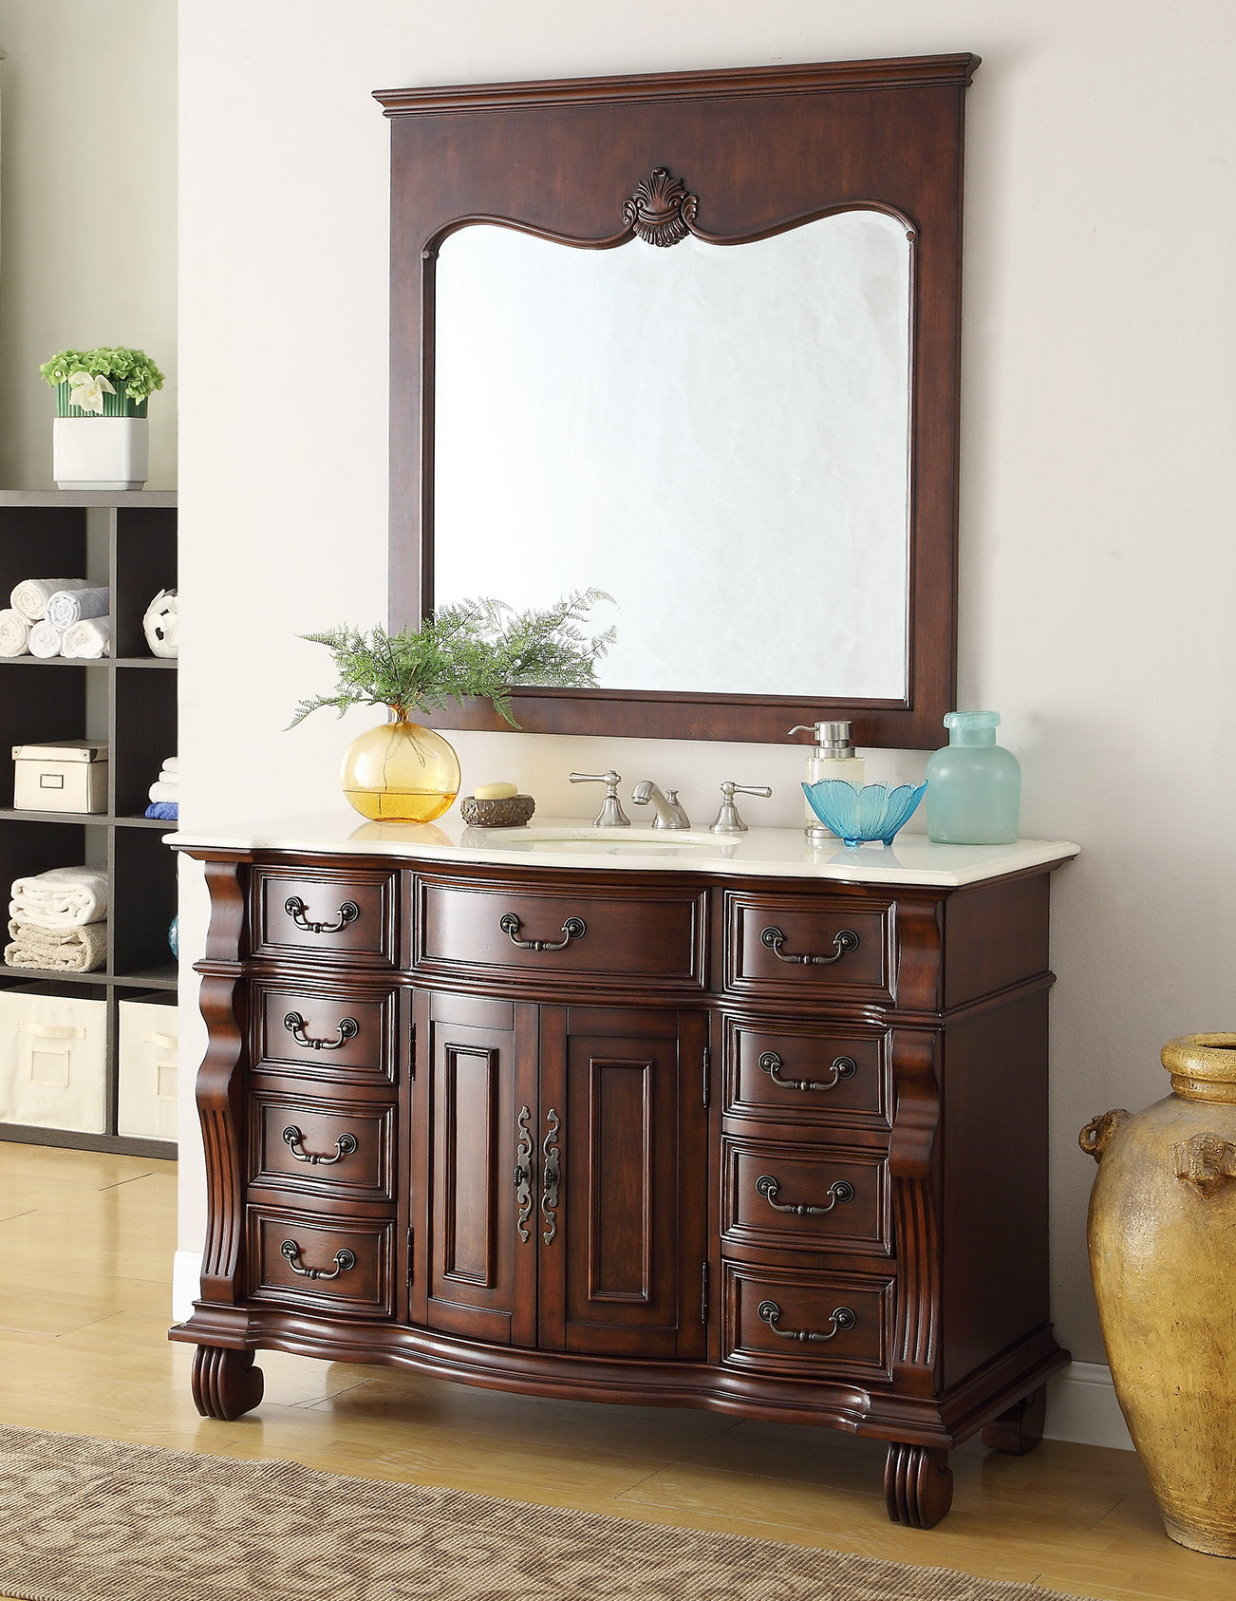 Adelina 50 inch Antique Bathroom Vanity Brown Finish Imperial White Marble Top